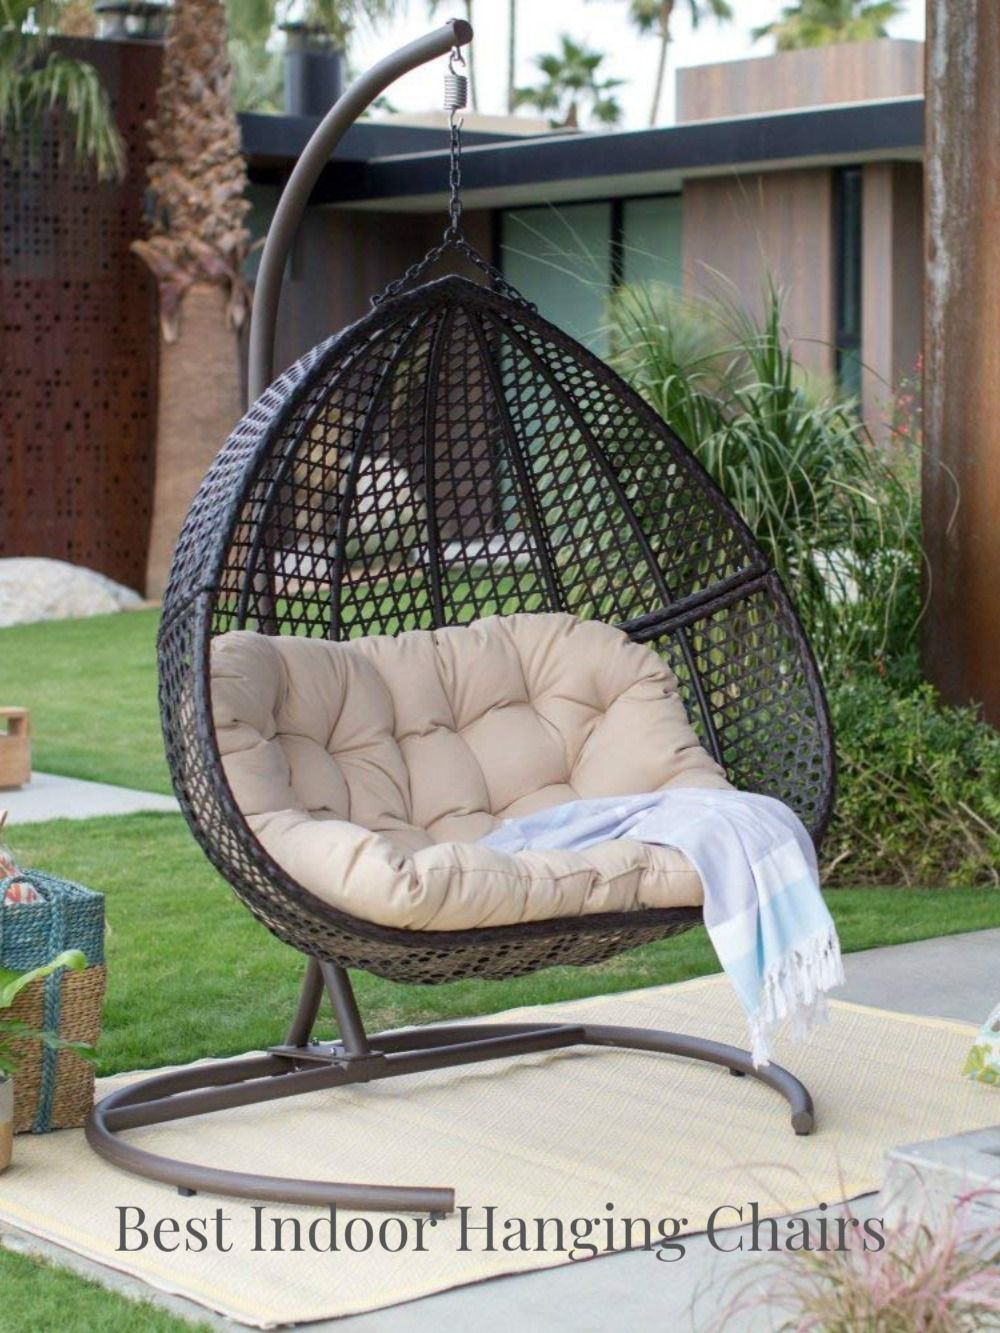 Egg Swing Chair Price In Pakistan